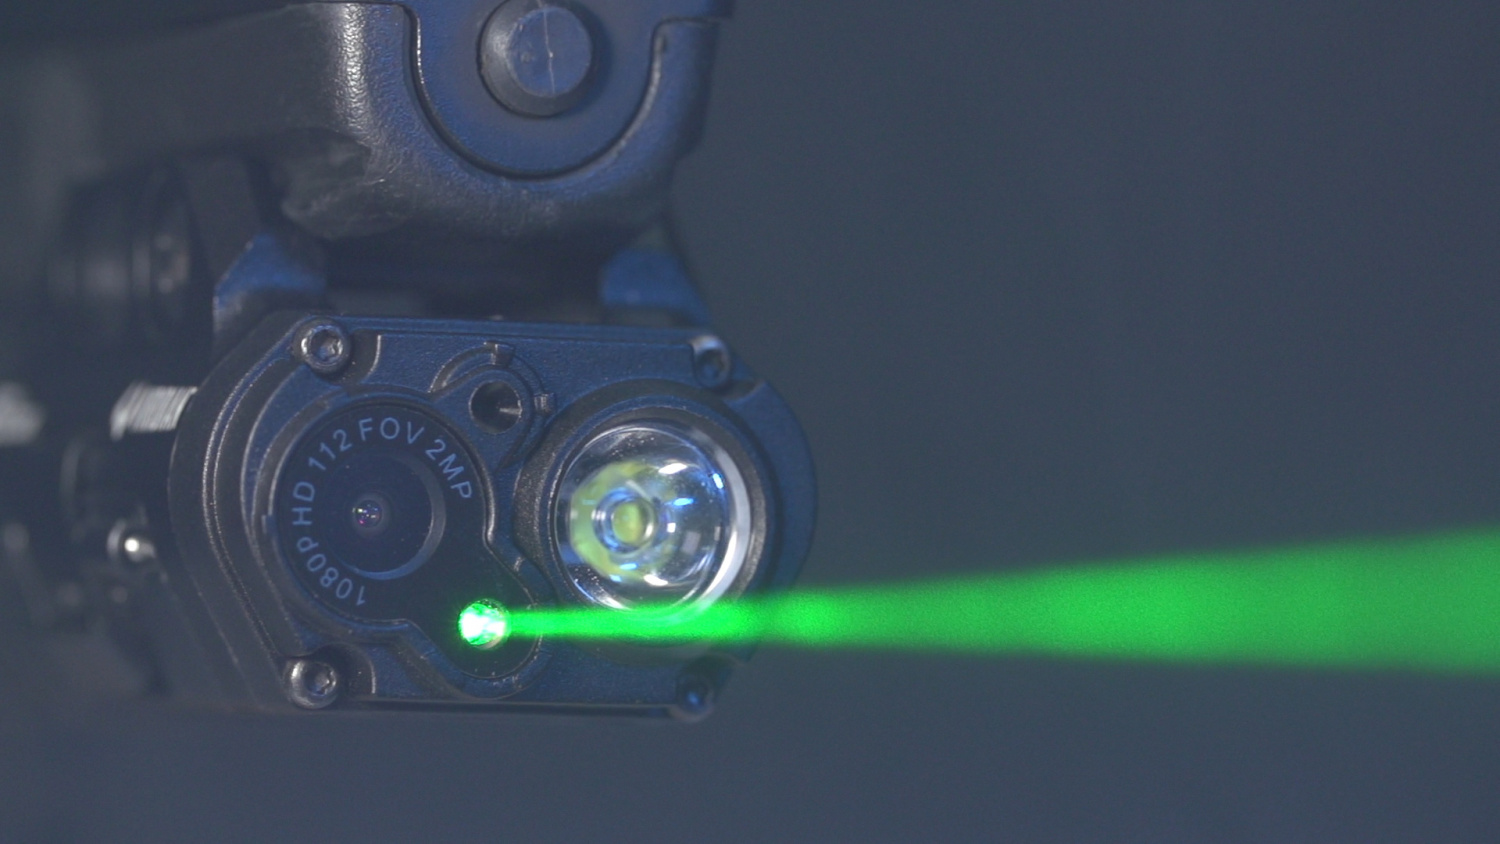 Viridian also offers a version of the FACT with an integrated green laser.